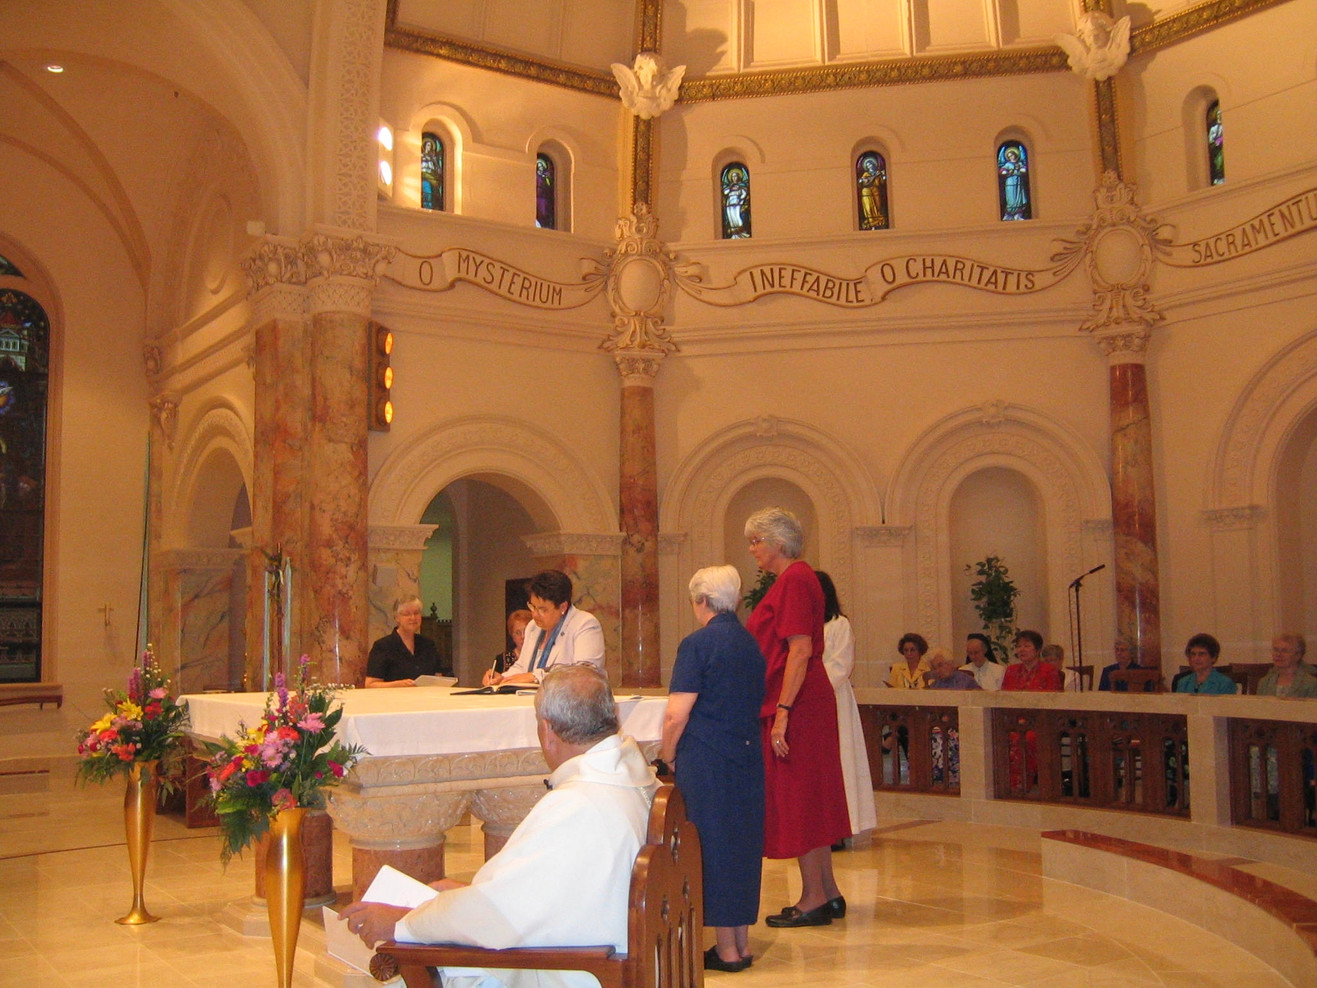 Pictured is Sr. Mary Henry signing her final vows (2006), witnessed by Srs. Peggy Bonnot, Helena Monohan, Bette Bluhm, and Eleanor Geever.